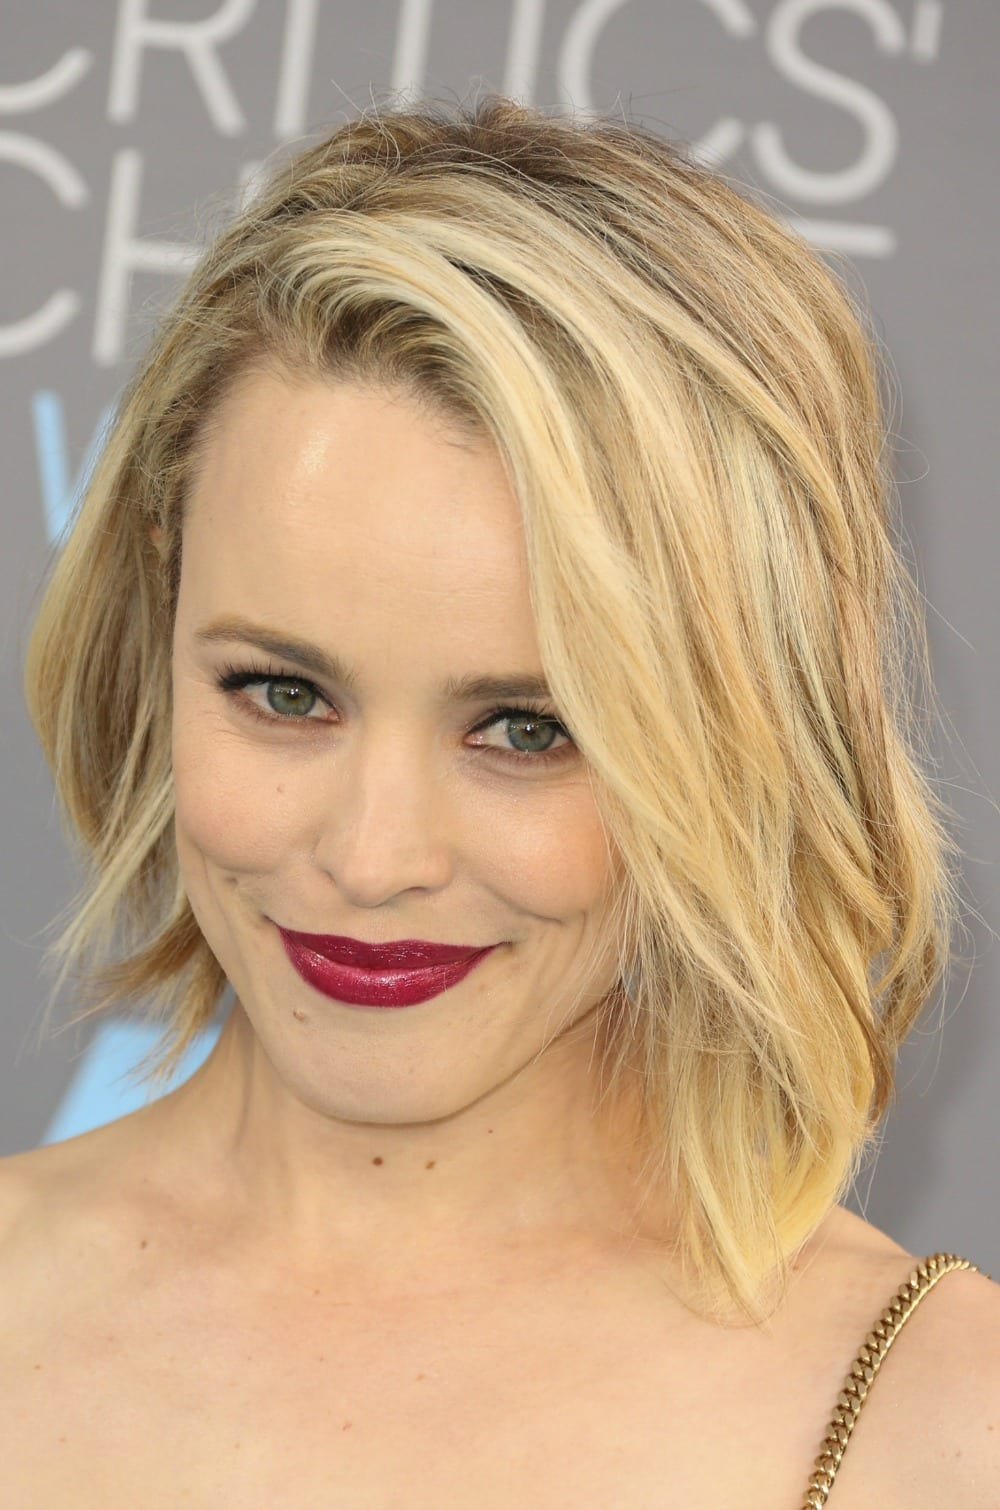 20 Hairstyles for Short Hair You Will Want to Show Your